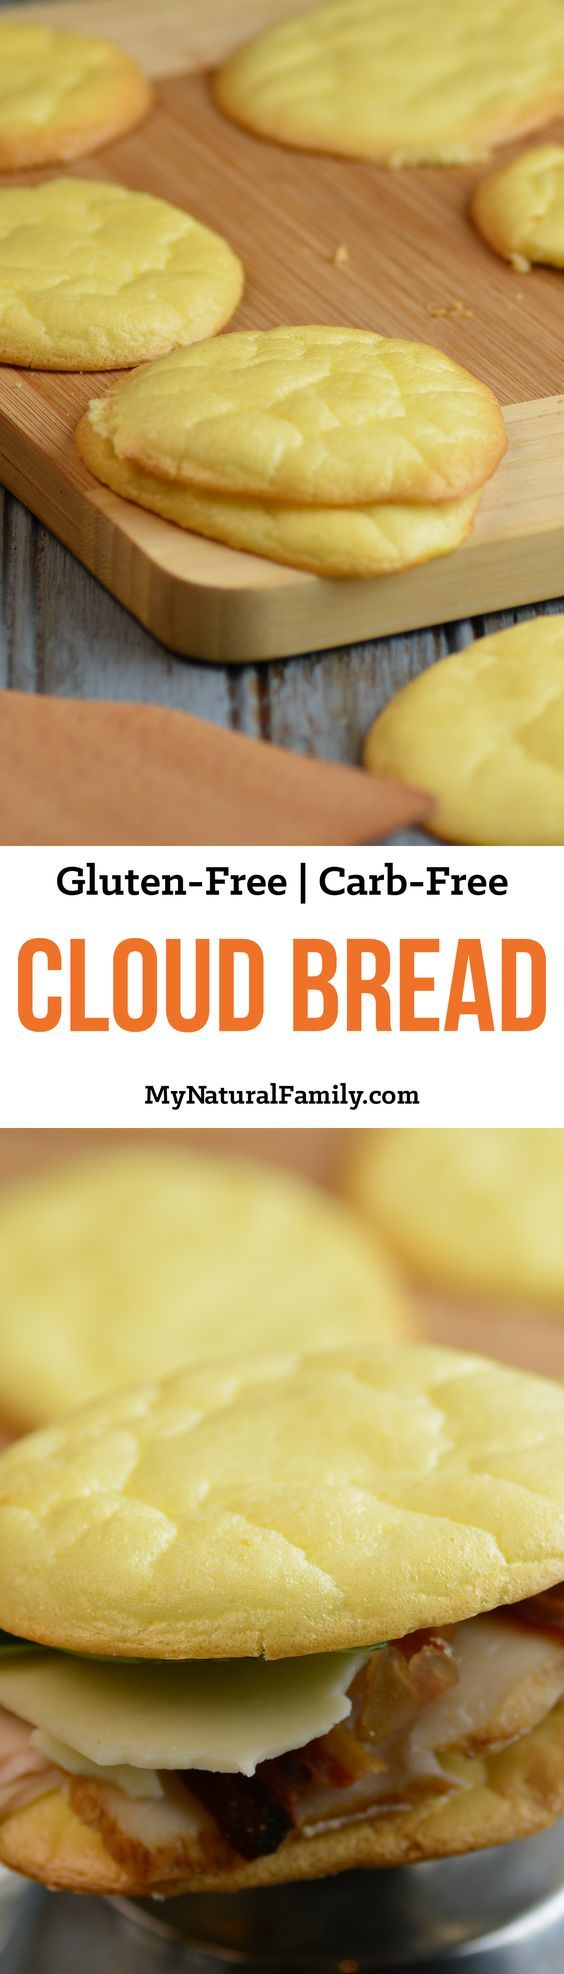 4-Ingredient Cloud Bread Recipe {Gluten-Free, Carb-Free}